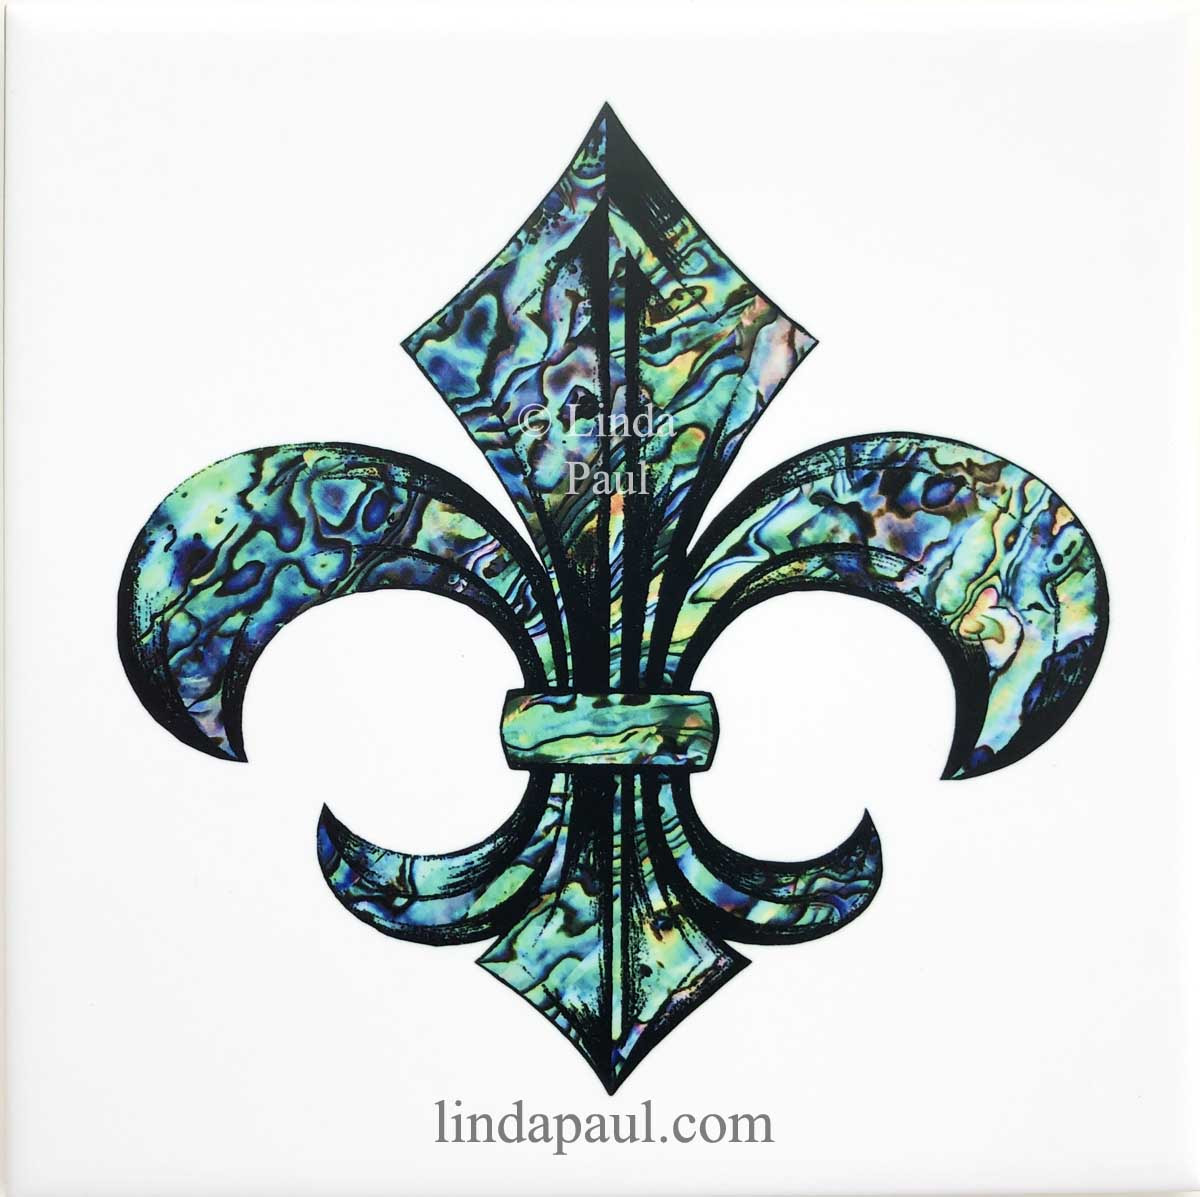 Fleur de lis Tile - Ceramic tiles 2x2 4x4 6x6 and 12 x 12 ...